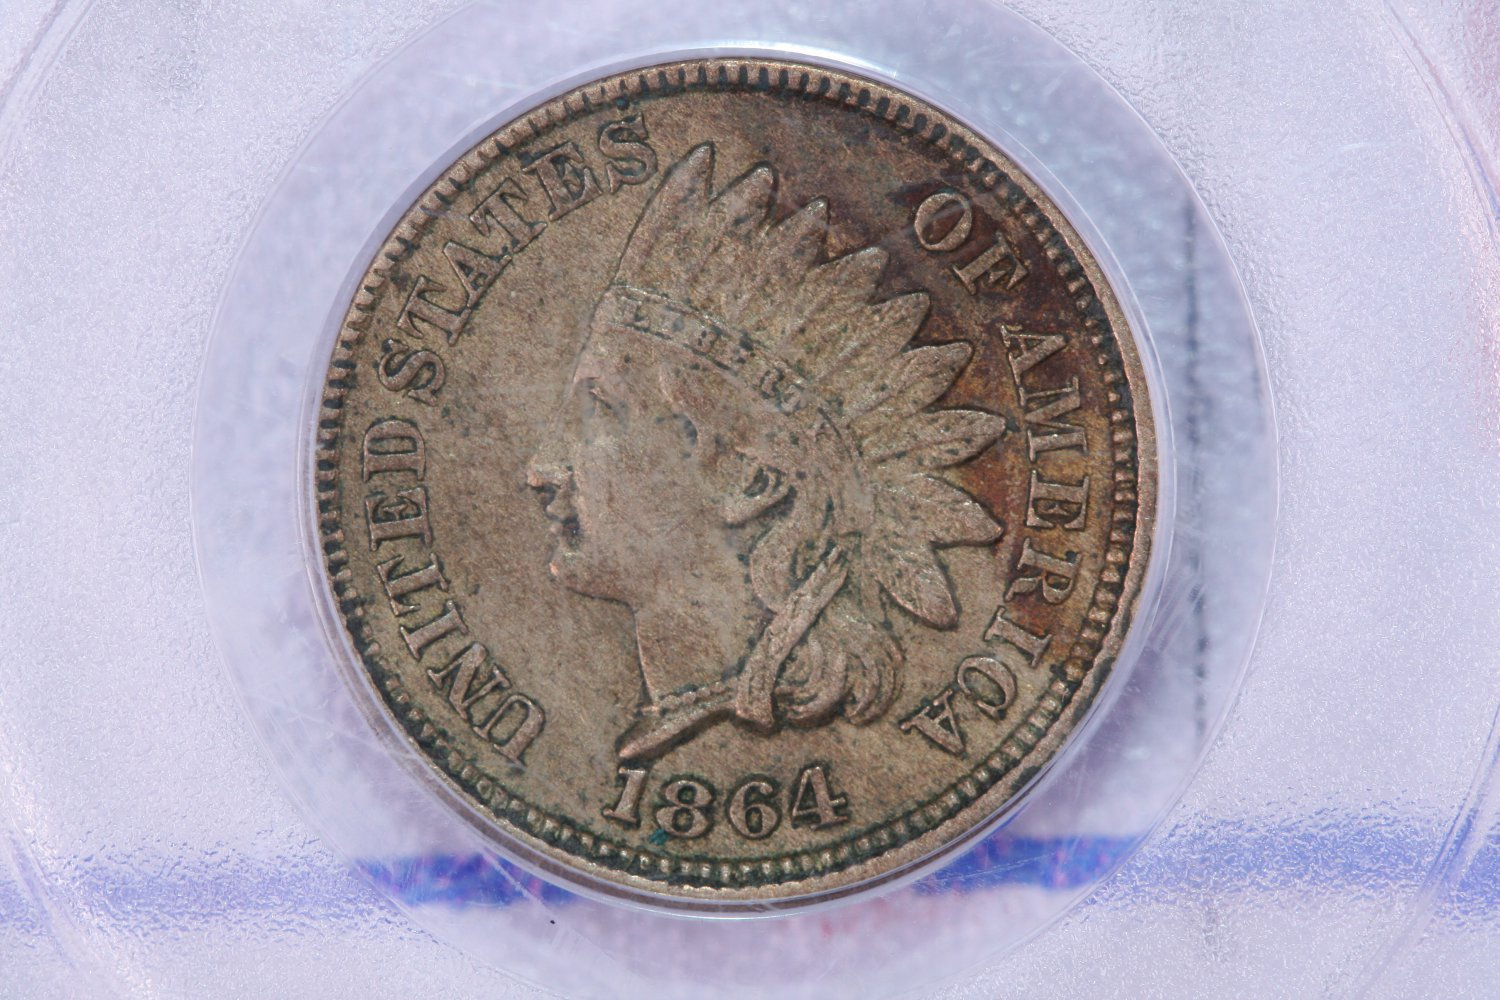 1864 Indian Head Penny, Copper Nickel. Affordable Graded Coin.  PCGS XF-45.